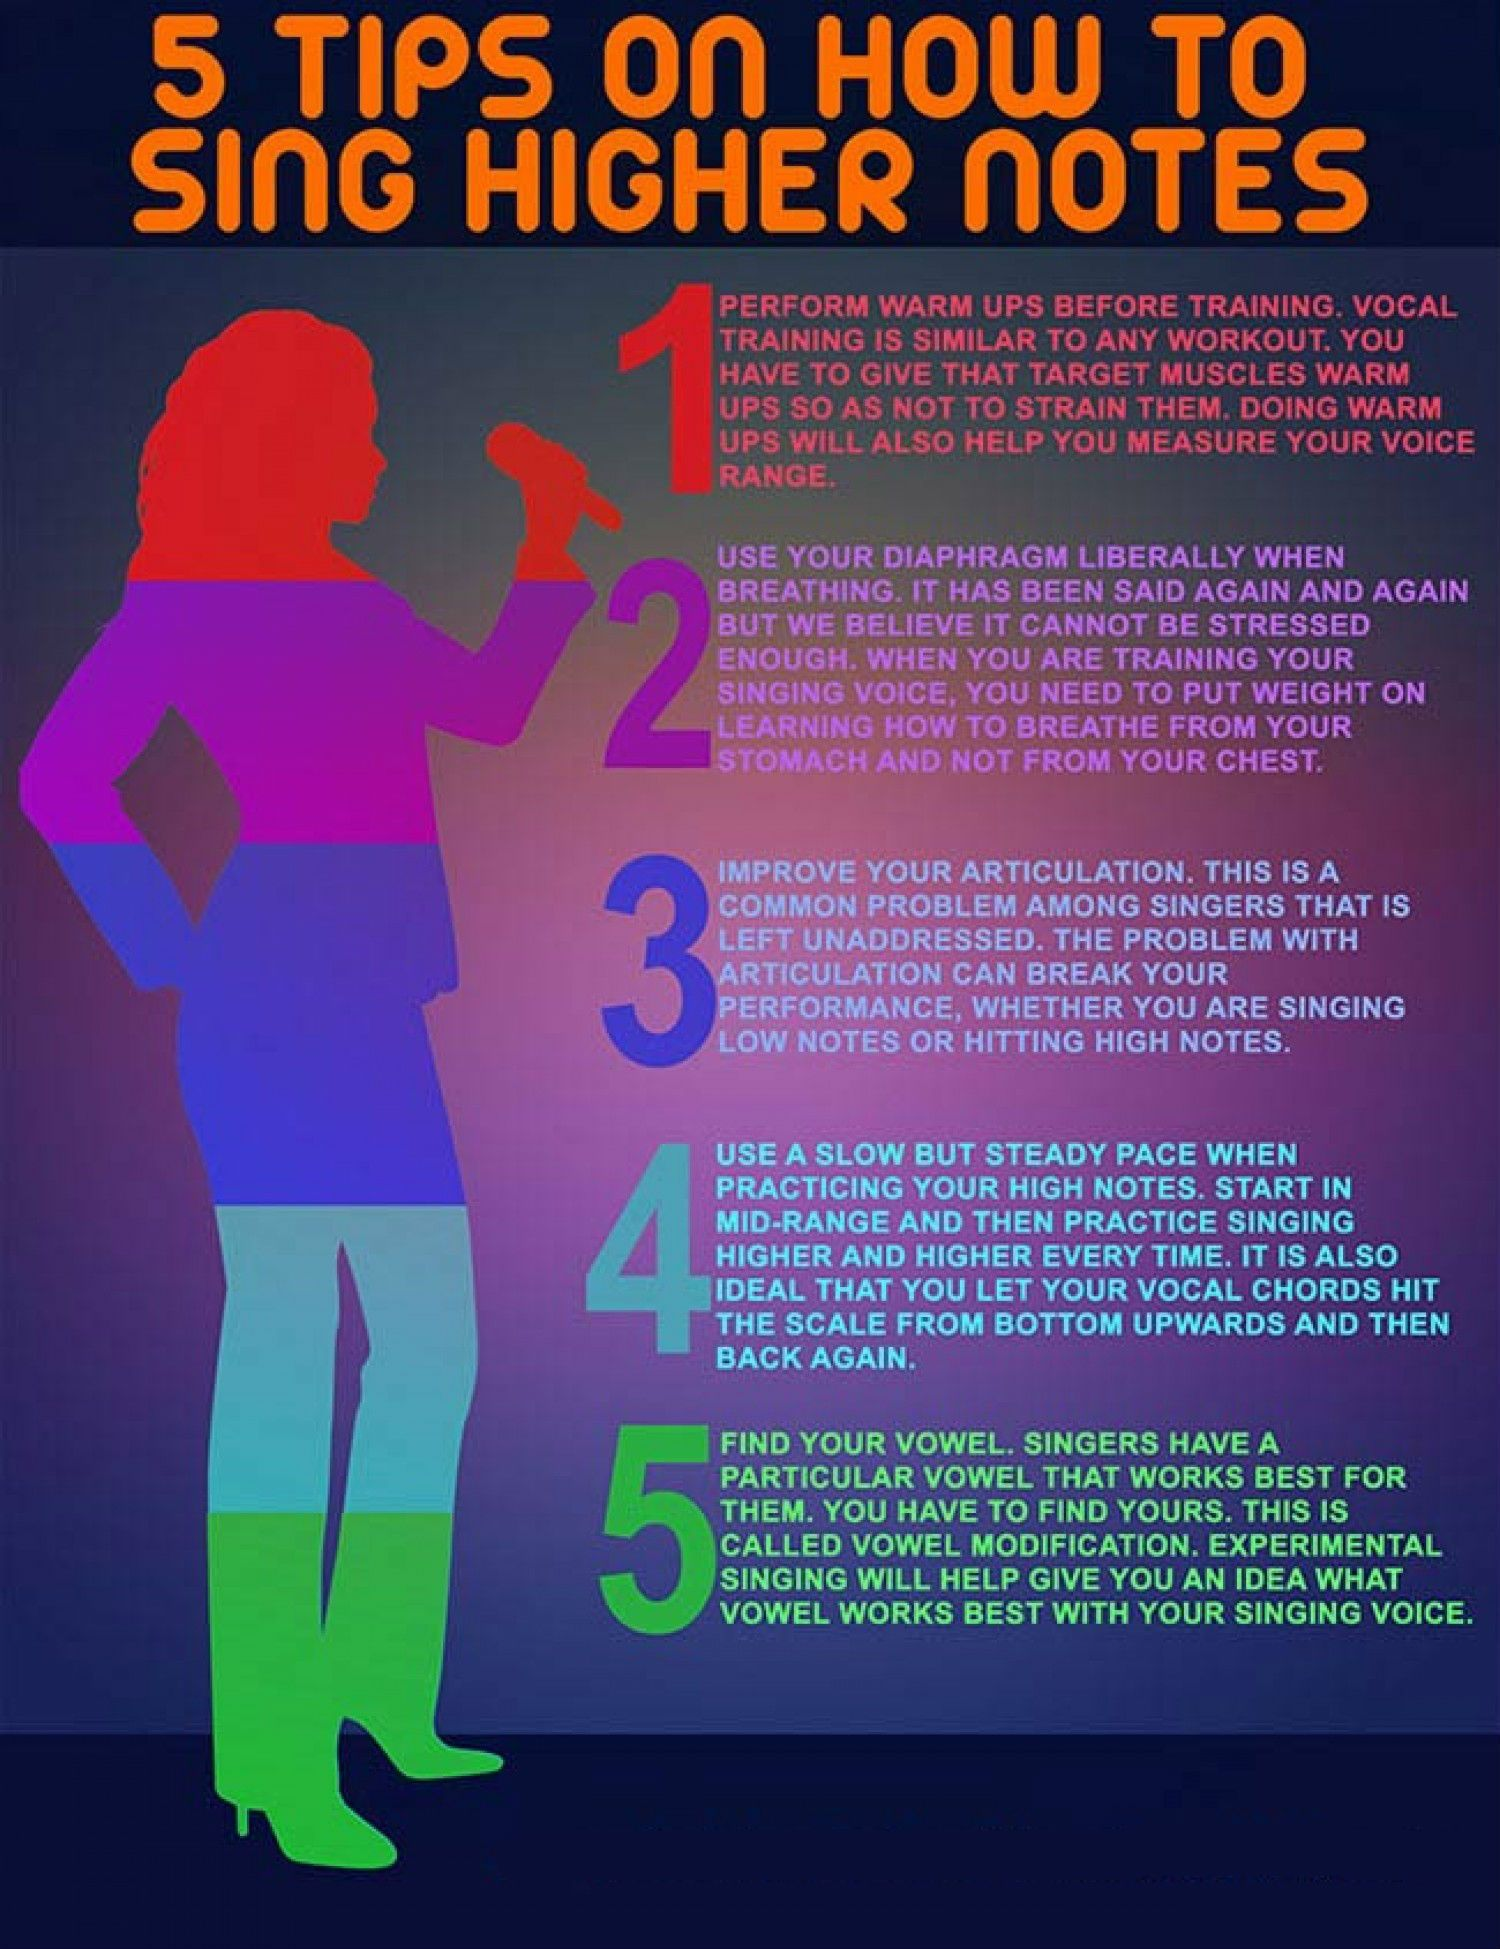 5 Tips on how to sing higher notes! Great advice... When